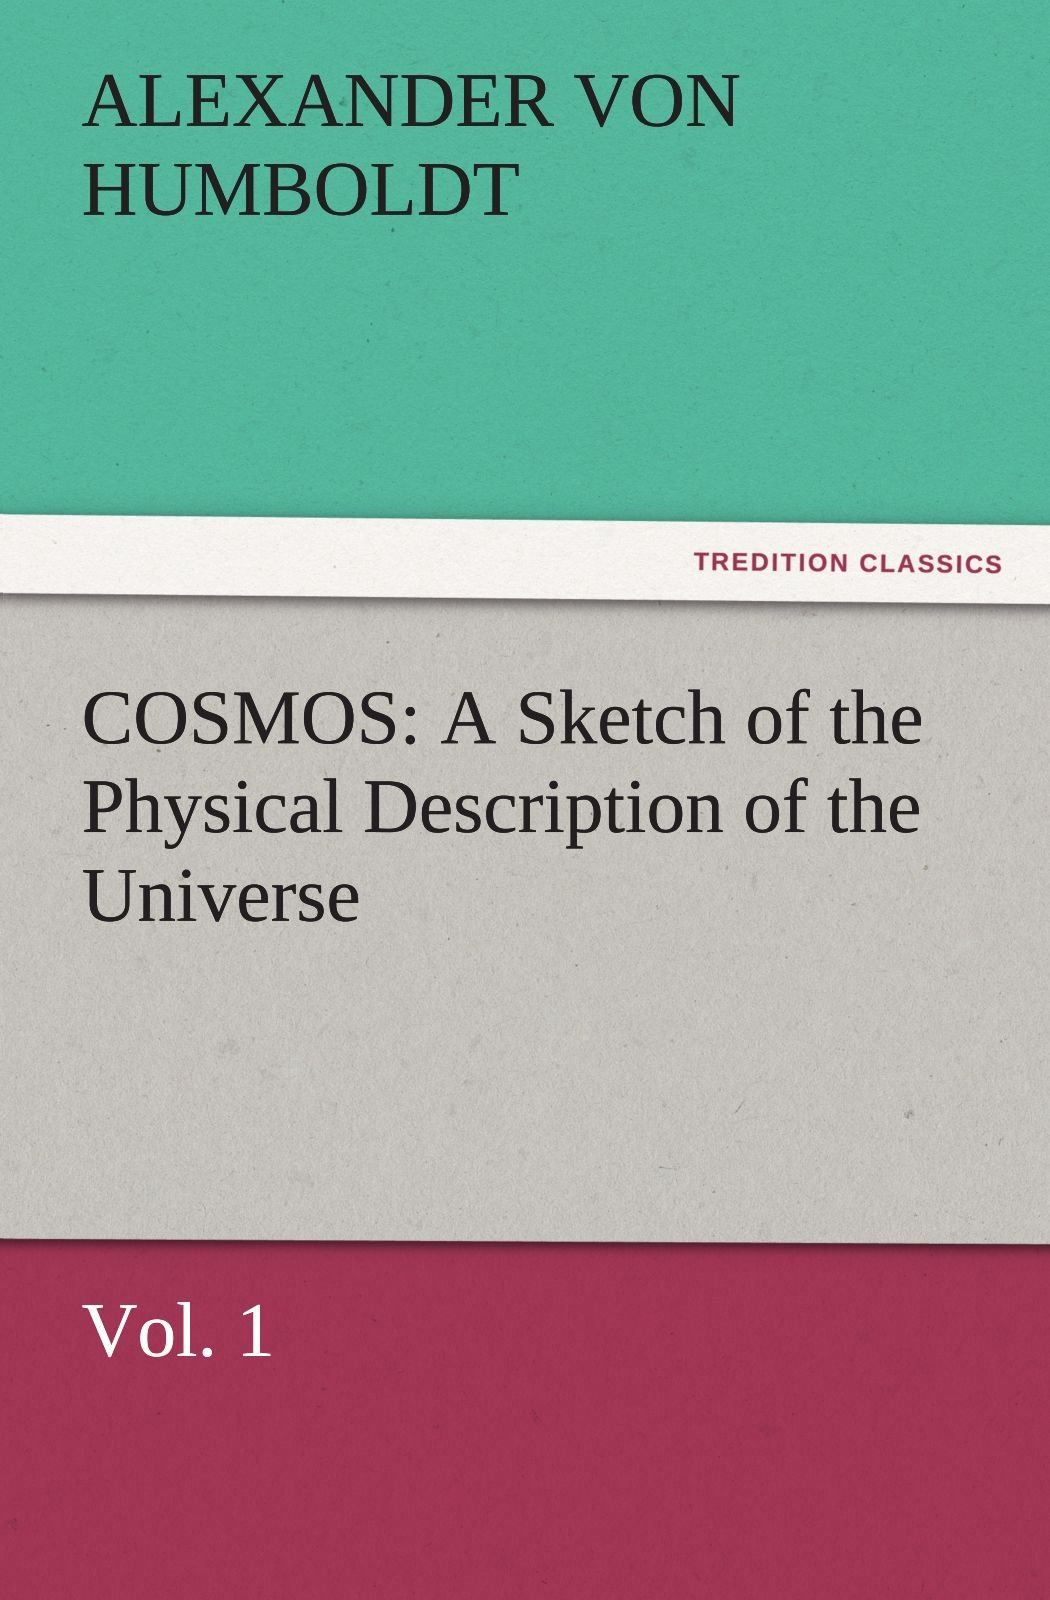 COSMOS: A Sketch of the Physical Description of the Universe, Vol. 1 (TREDITION CLASSICS) PDF